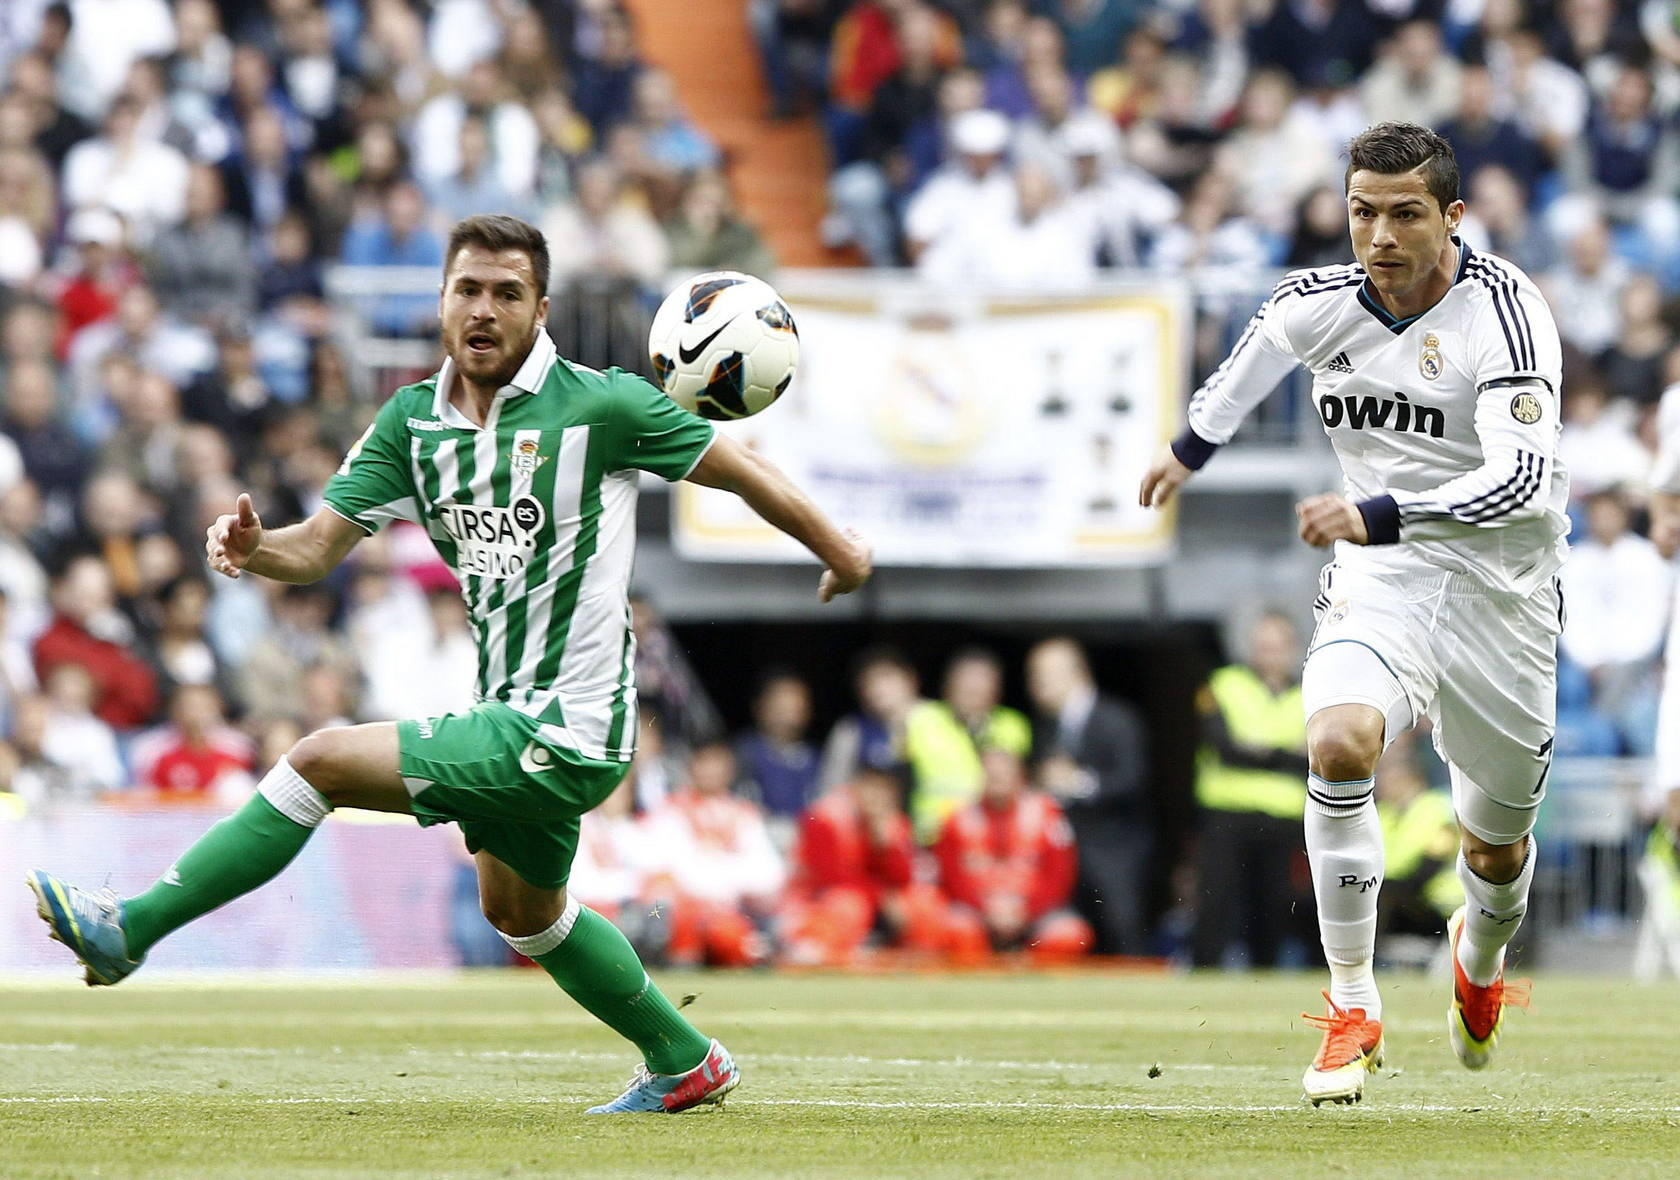 Real Madrid-Real Betis (Primera Divisi&oacute;n)